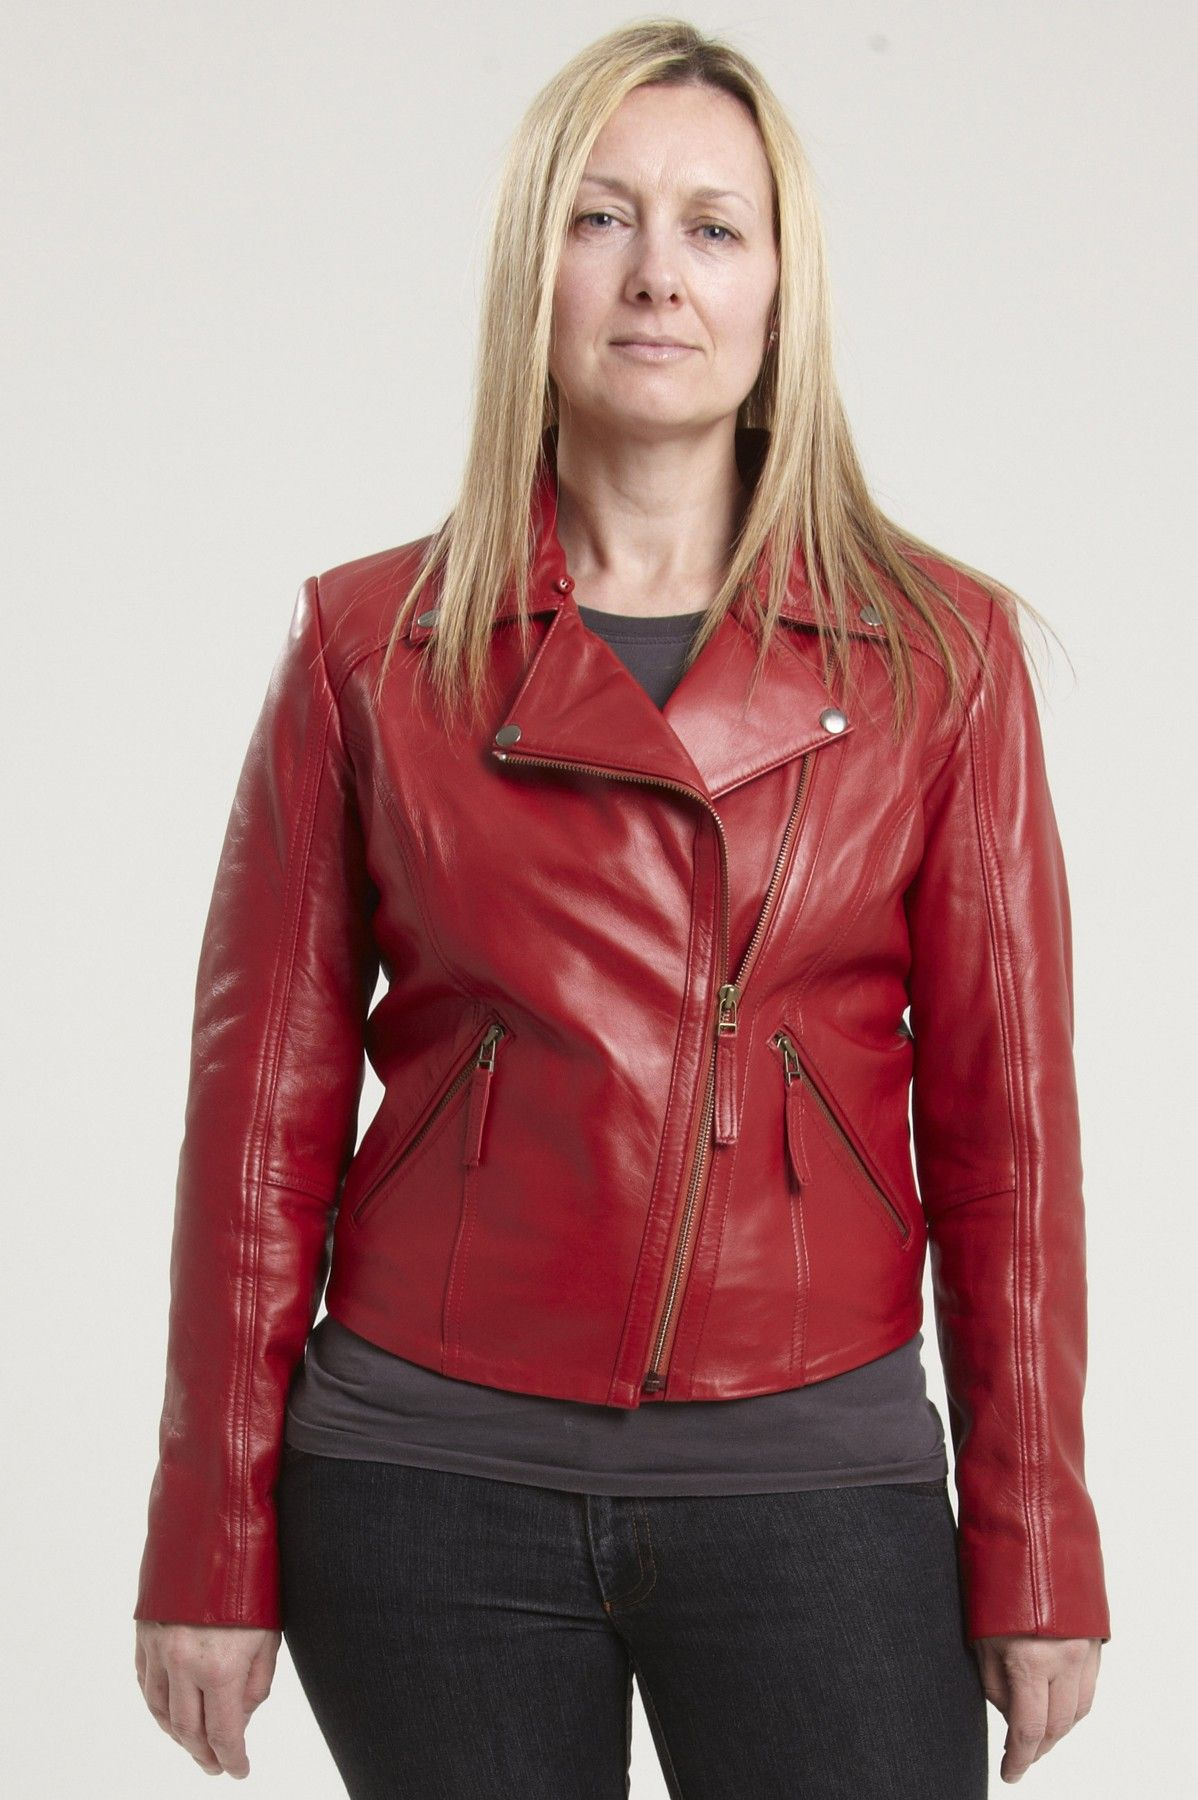 The ERICA womens red leather biker jacket in real leather